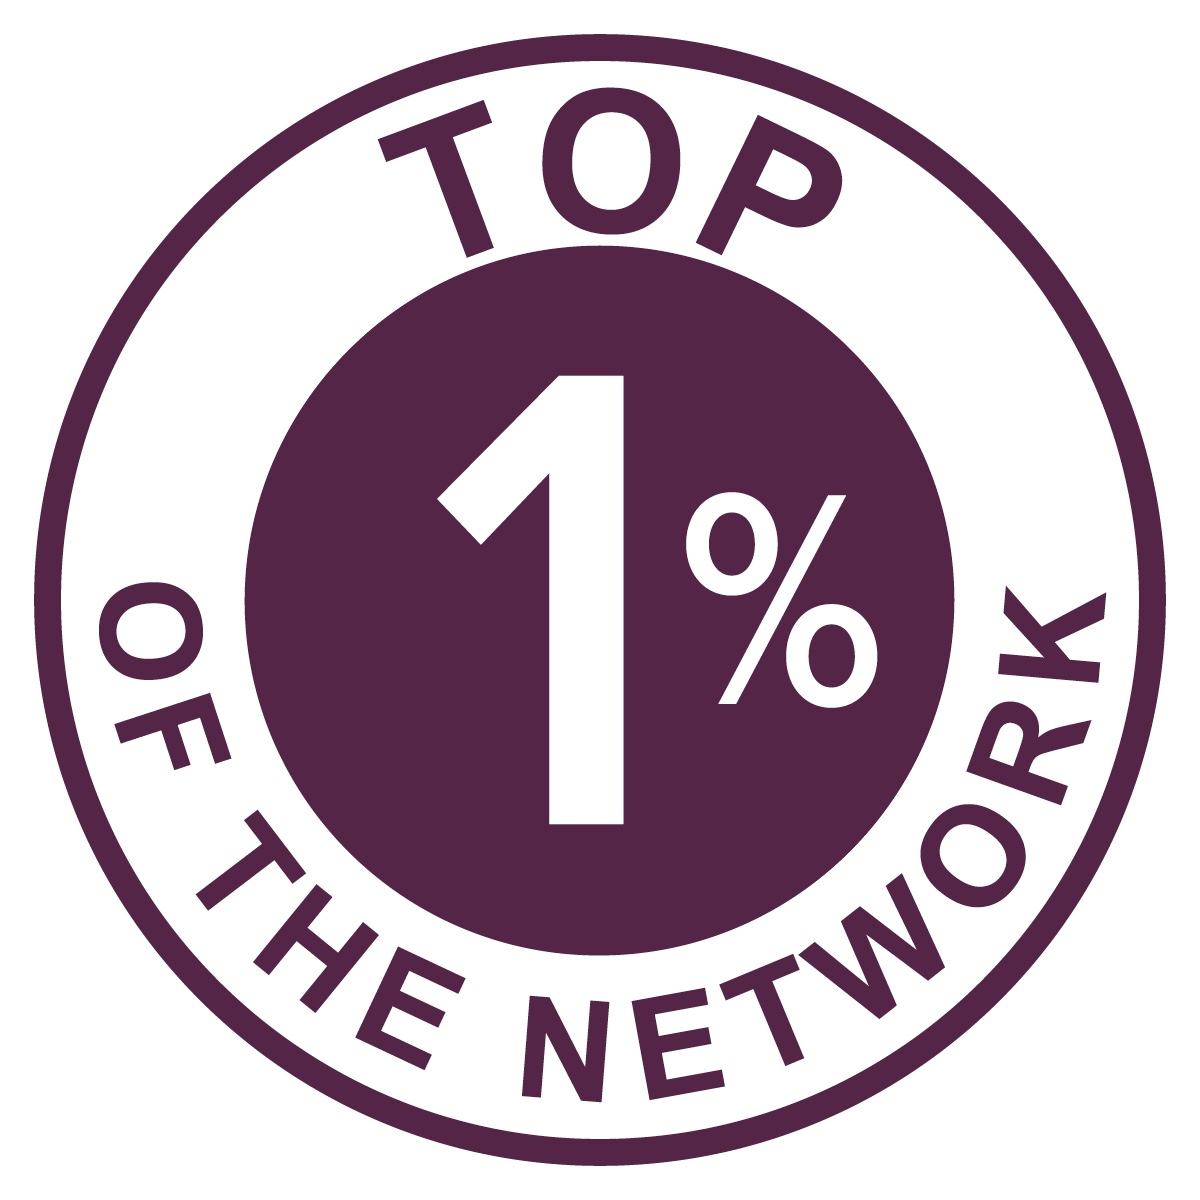 2018 CHAIRMAN'S SELECT PLATINUM AWARD WINNERS - TOP 1% OF THE BERKSHIRE NETWORK IN 2018 FOR SALES NATIONWIDE